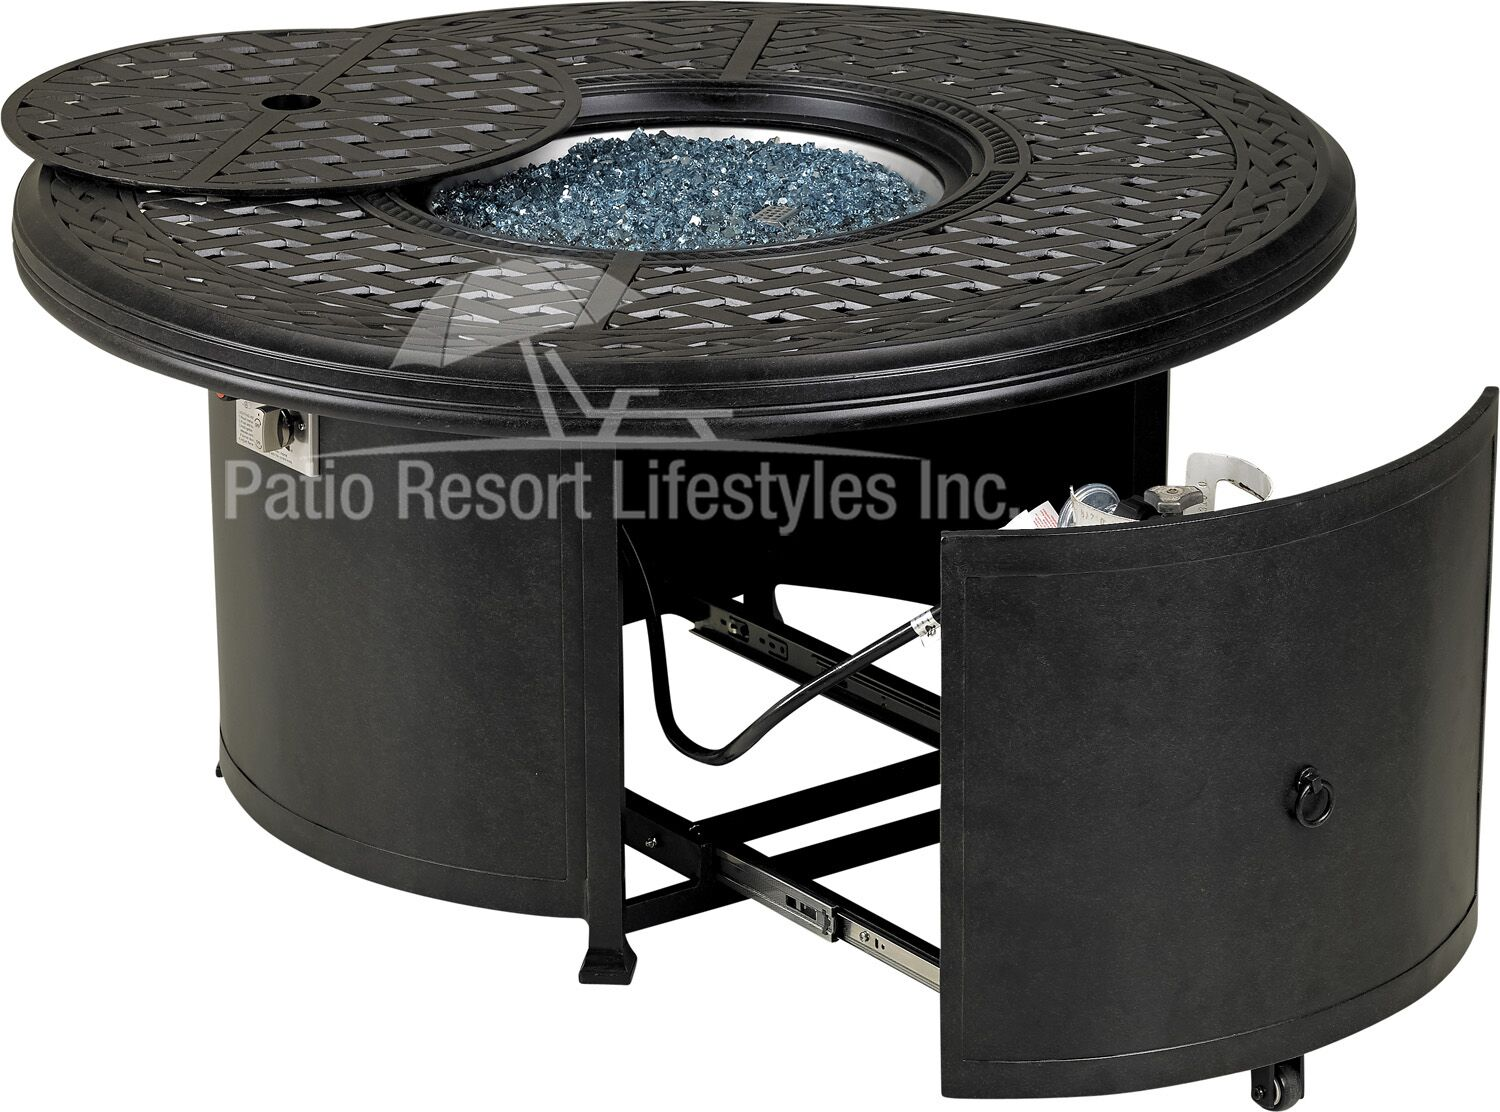 48 windsor series round fire table w built in burner accessory